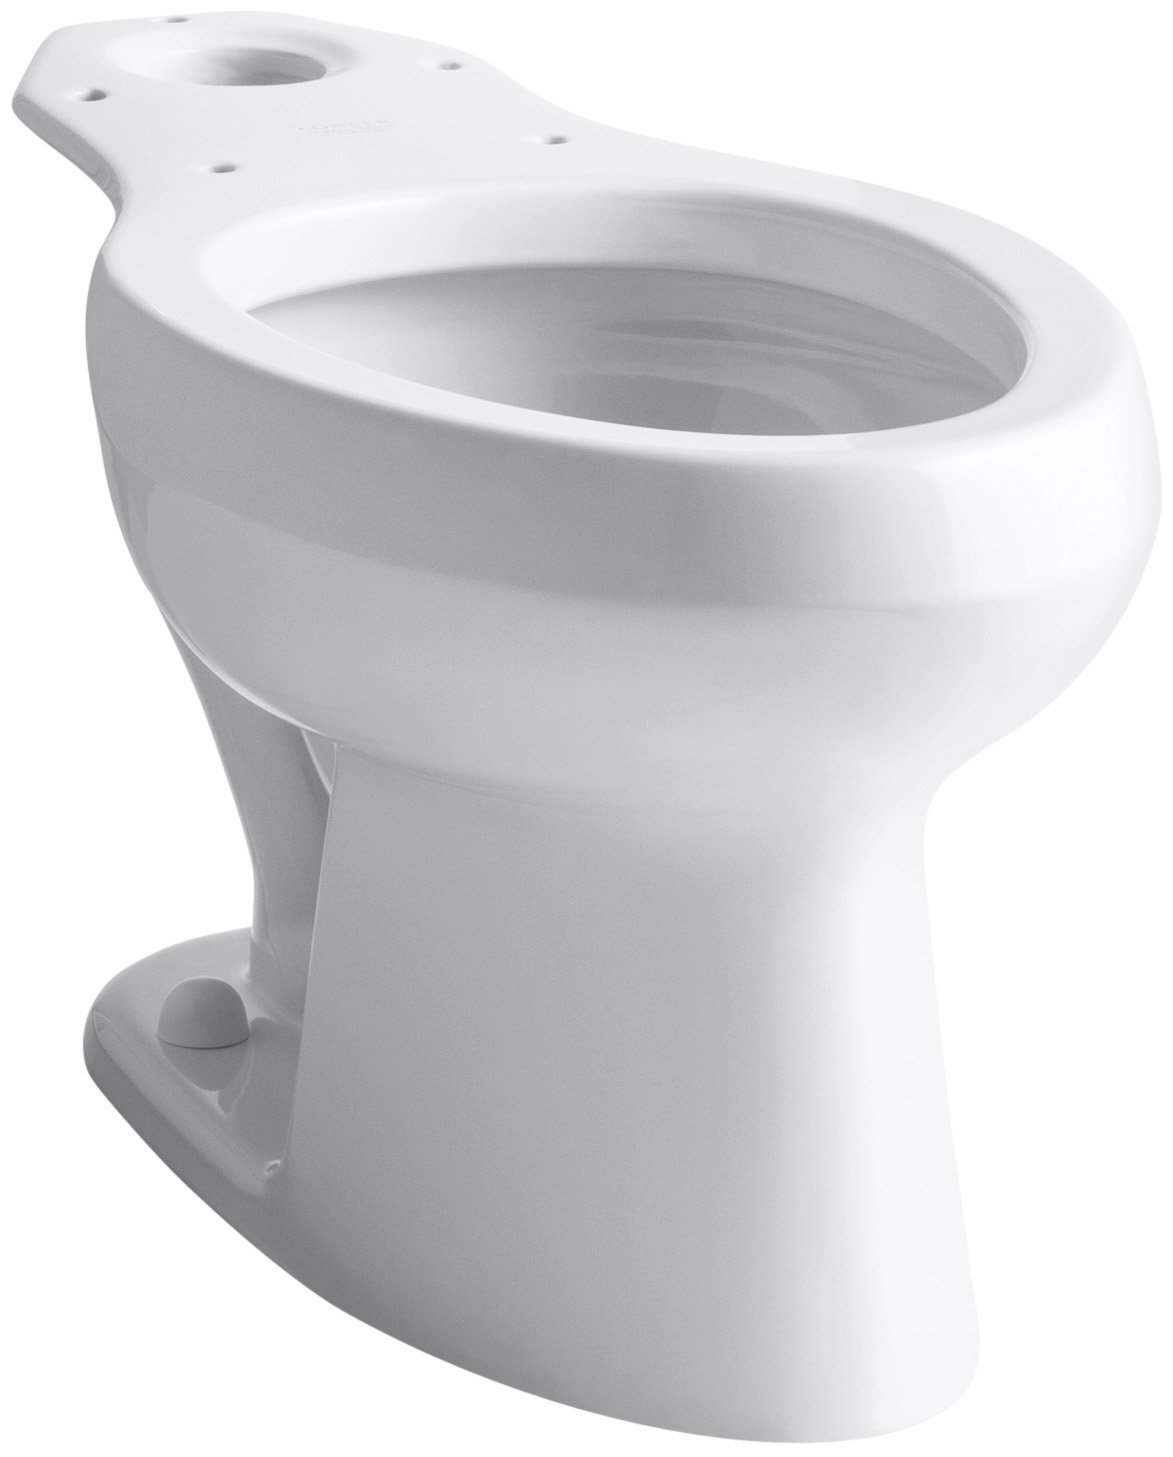 Toilet Bowls Online Shopping For Clothing Shoes